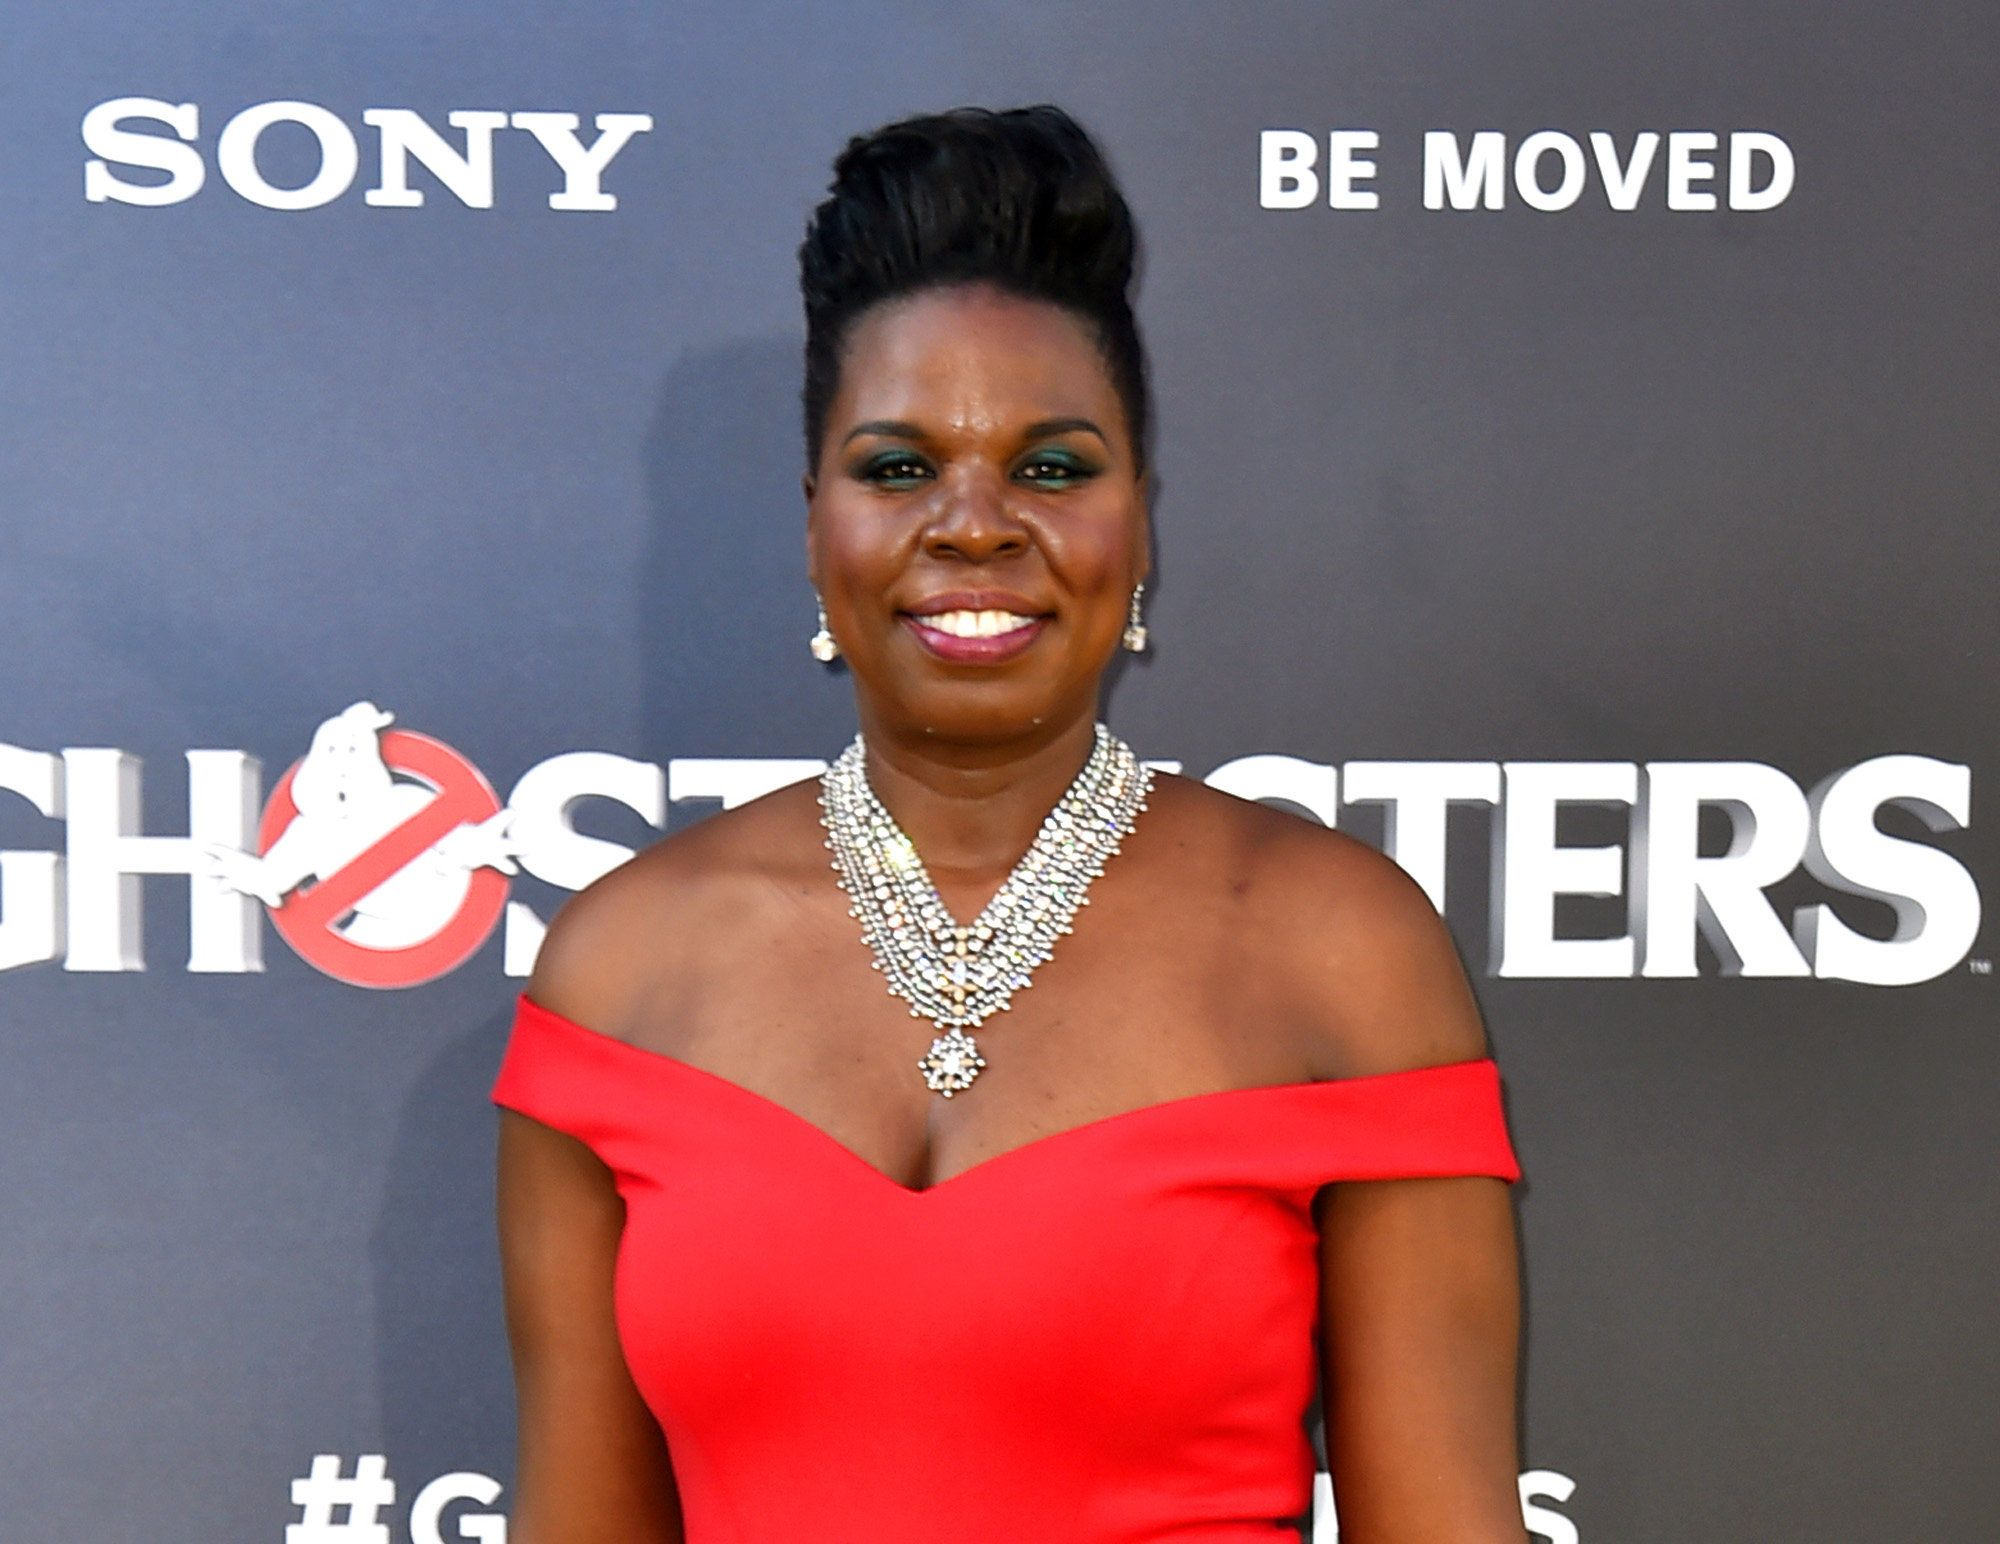 "FILE - In this July 9, 2016 file photo, Leslie Jones arrives at the Los Angeles premiere of ""Ghostbusters."" In a series of posts Monday, July 19, Jones said she had been pummeled with racist tweets. She said the messages were deeply hurtful and brought her to tears. (Photo by Jordan Strauss/Invision/AP, File)"